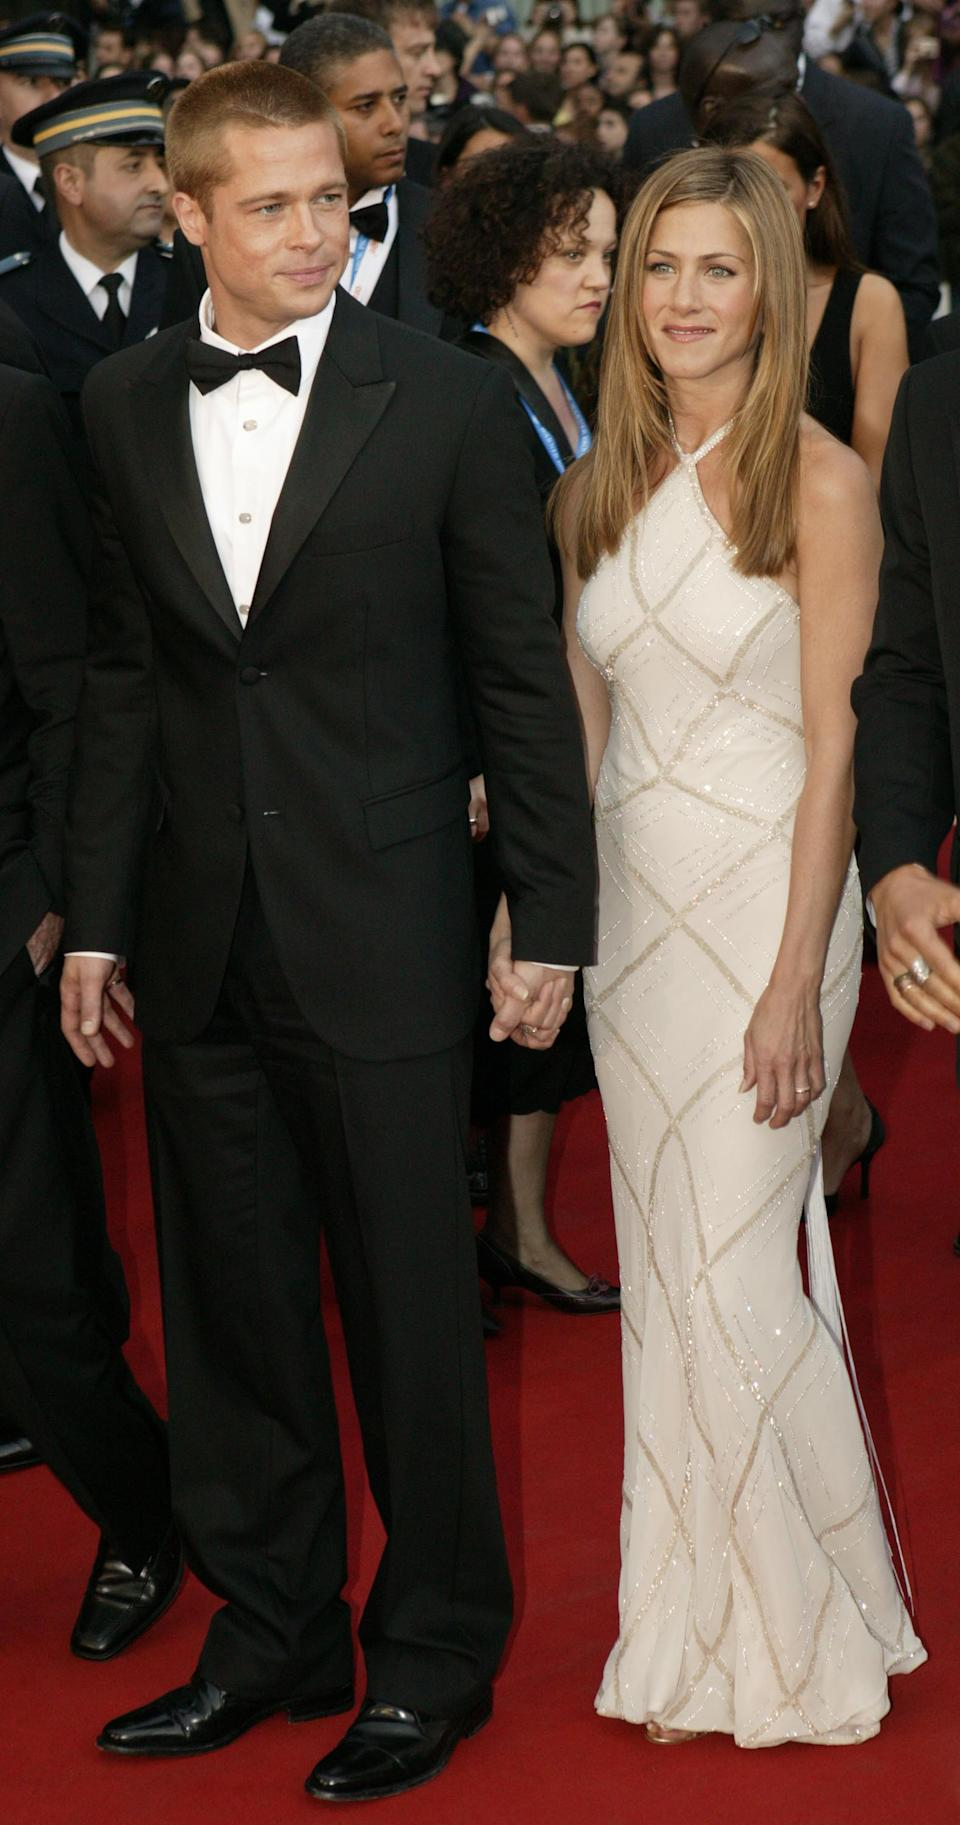 """All eyes were on Aniston and then-husband Brad Pitt at the glamorous Cannes premiere of """"Troy"""" in 2004. (Photo by Dave Hogan/Getty Images)"""